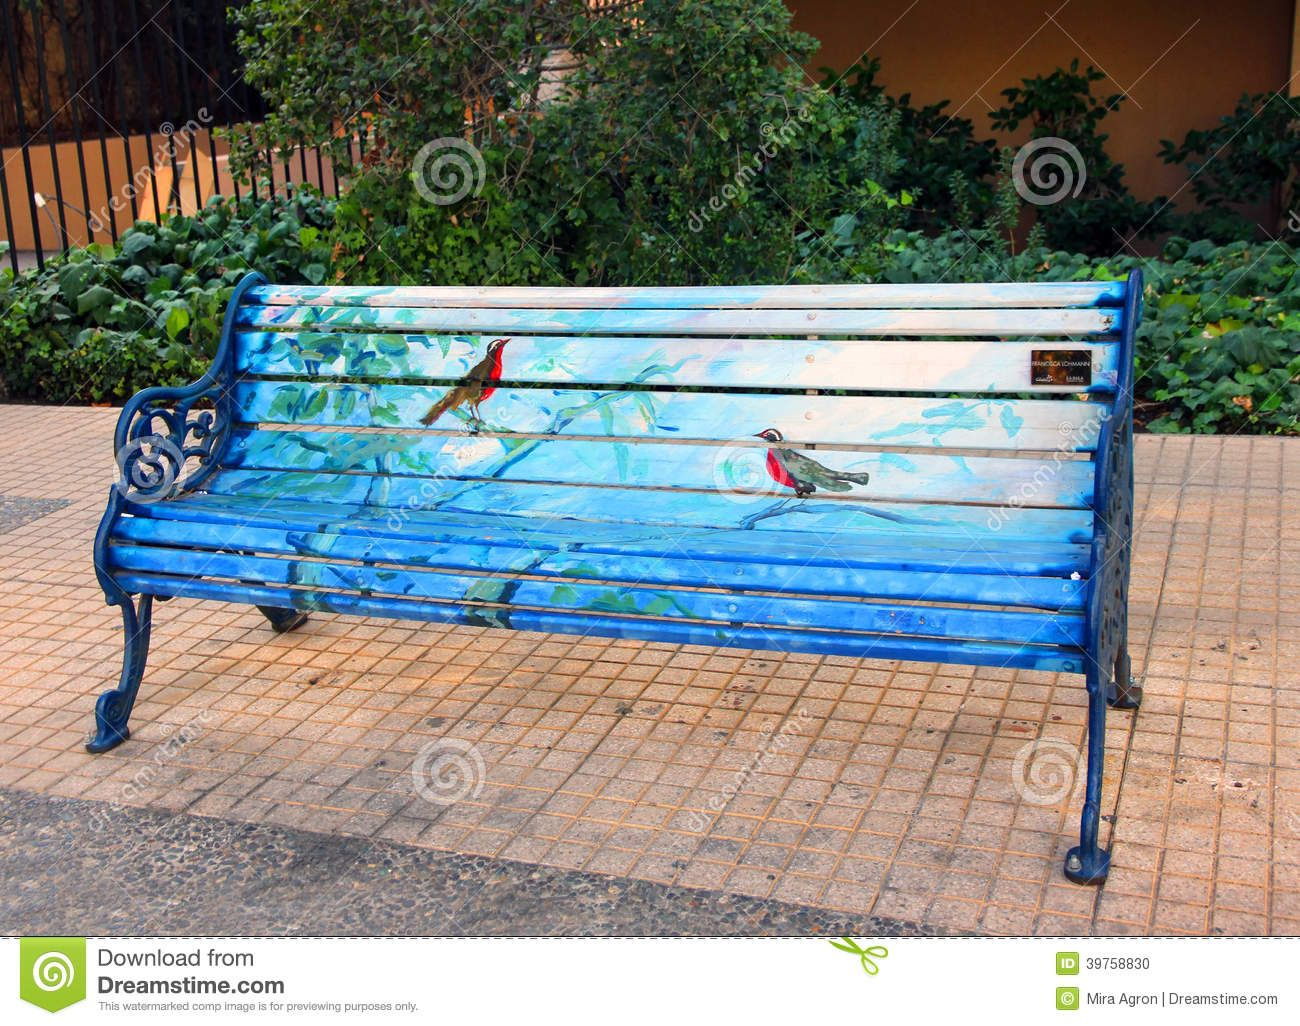 Good Painted Bench Ideas Part - 11: Painted Bench Editorial Photography Image: Rainbow Painted Bench Stock  Photo, Royalty Free Image: Art Takes A Seat Downtown Iowa Now, Painted Bench  ...